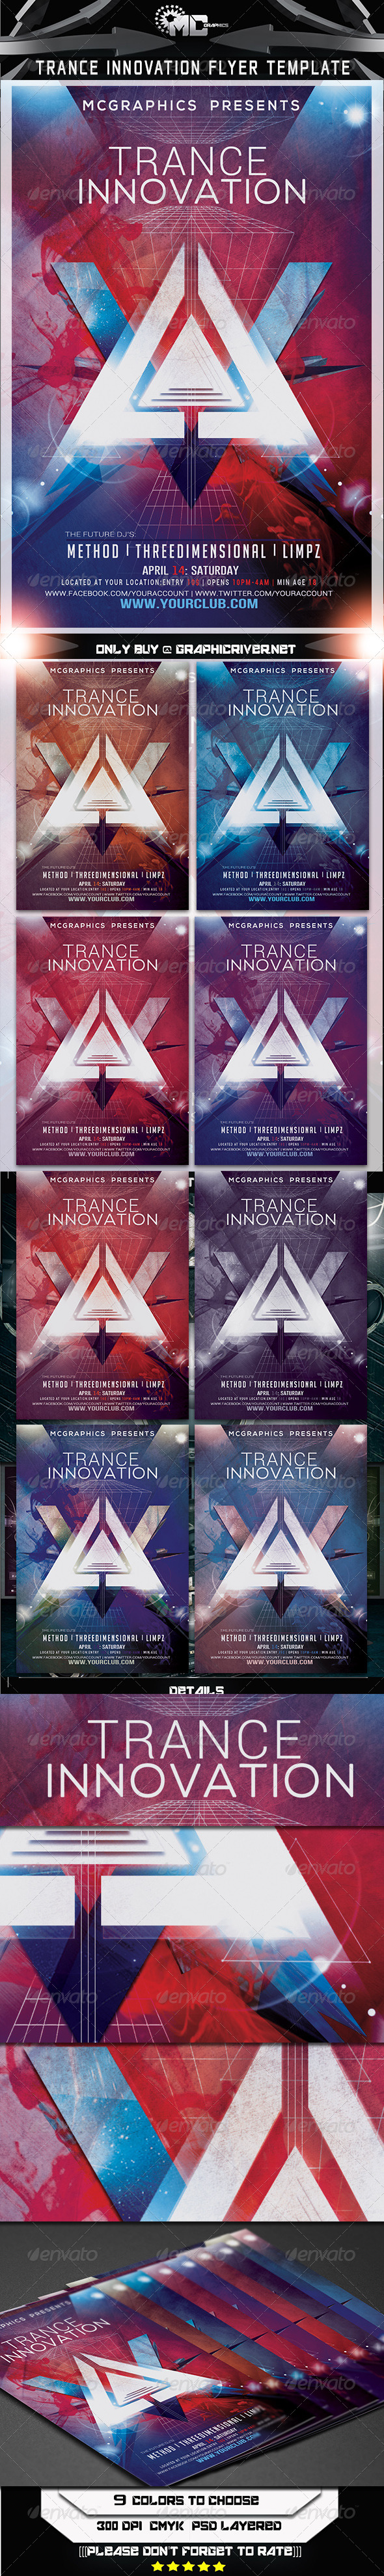 GraphicRiver Trance Innovation Flyer Template 7187660